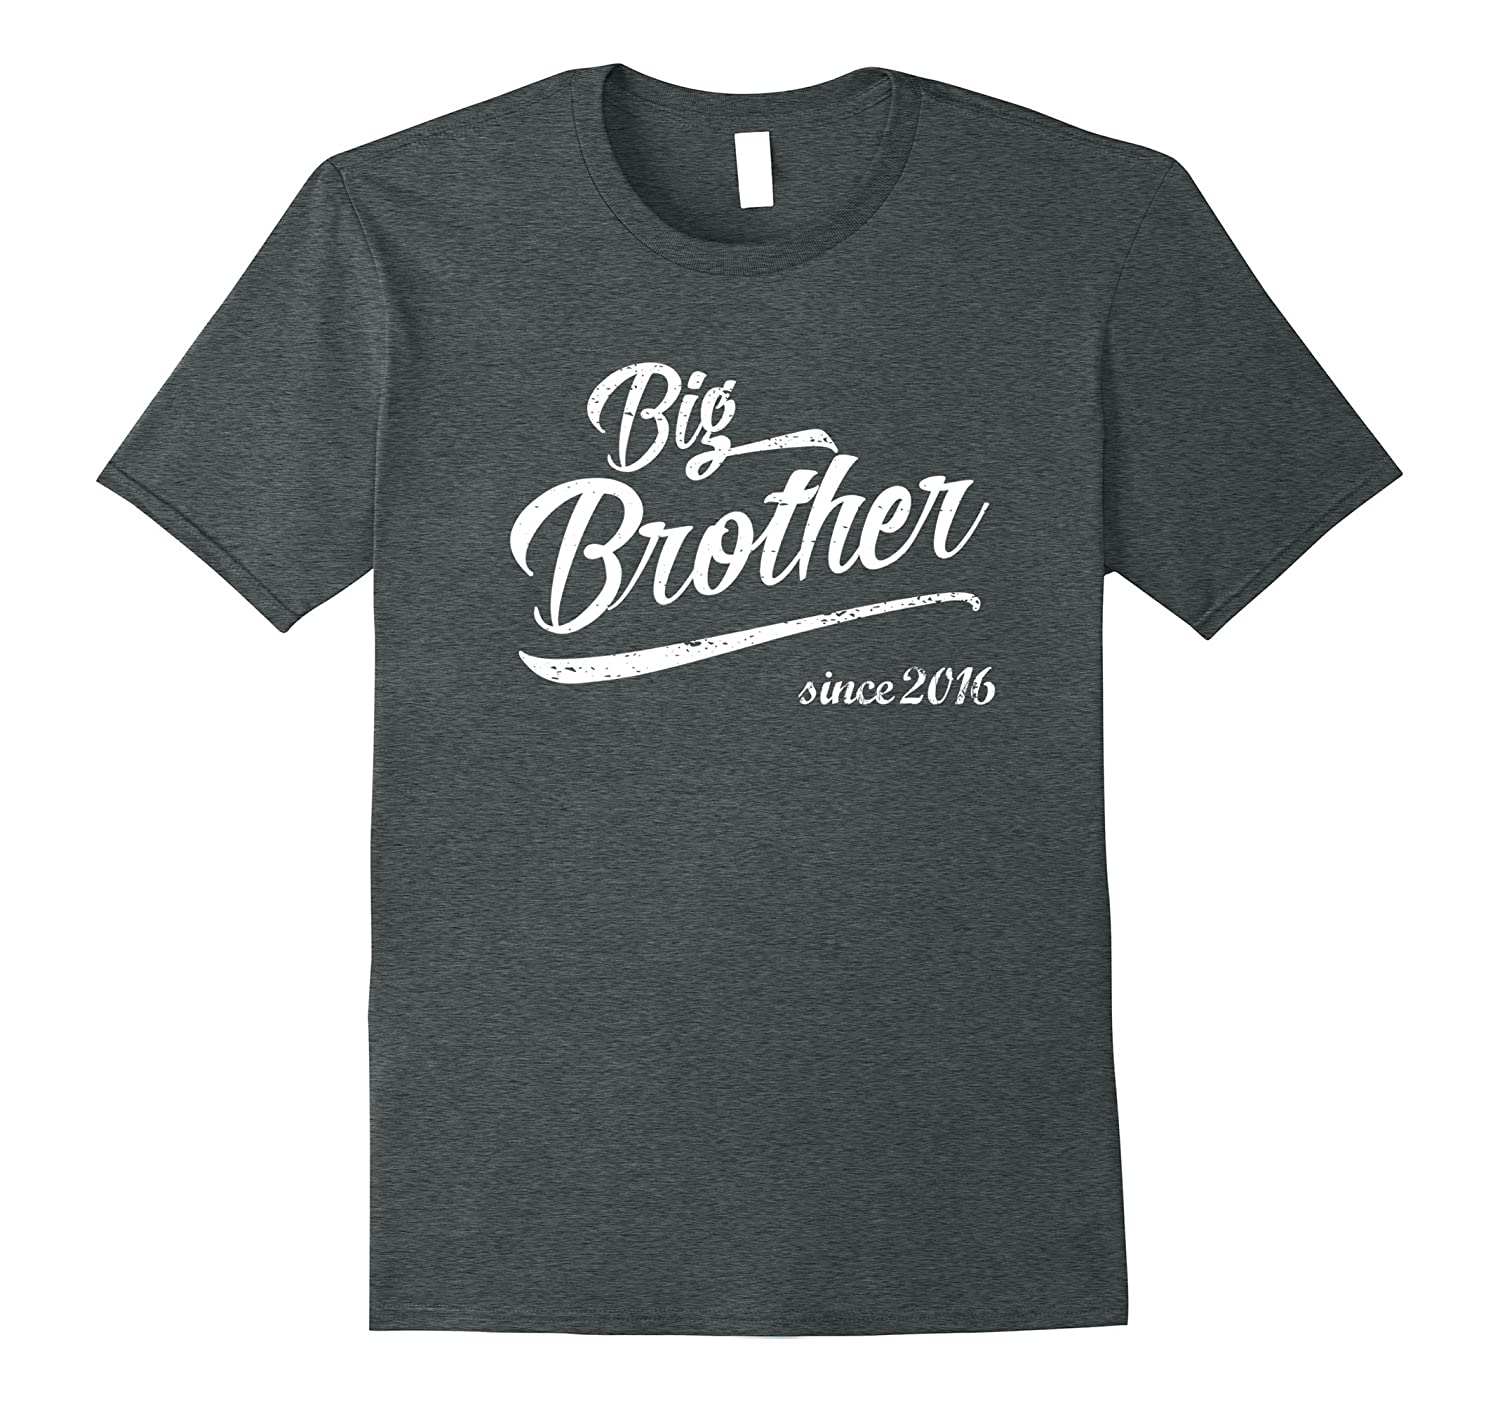 Big Brother Since 2016 T-Shirt Best Kids Ever Day Mom Dad